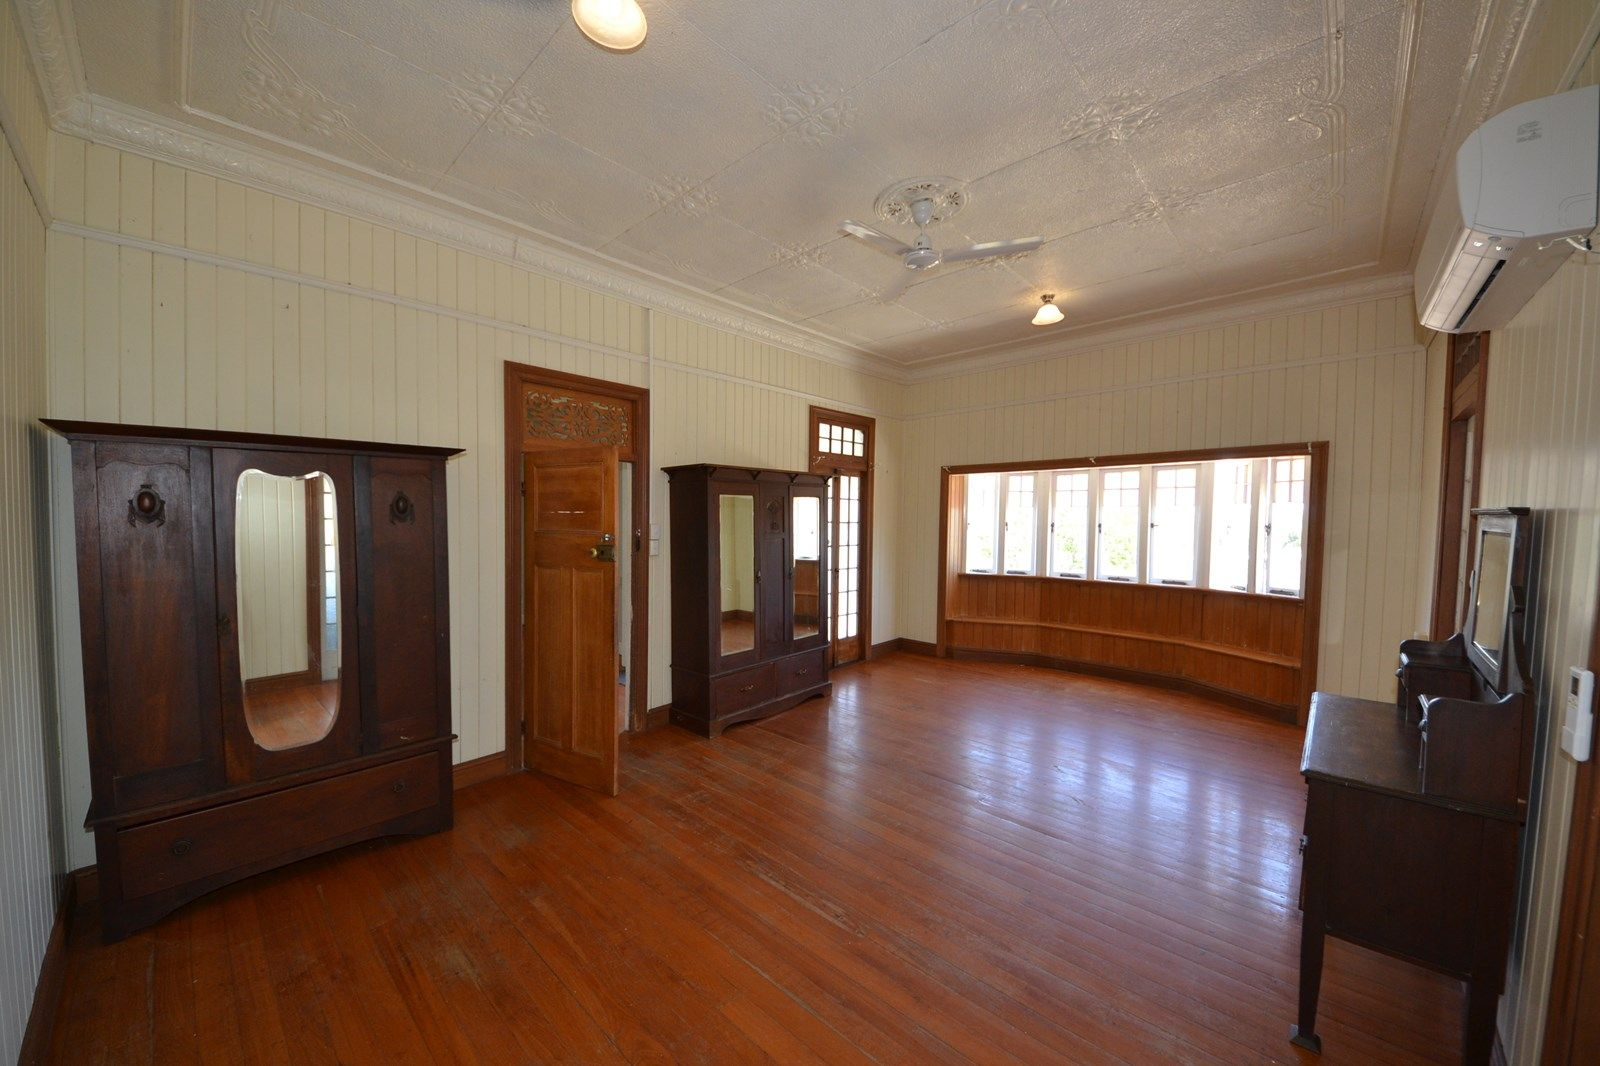 855 Gavial-gracemere Rd, Gracemere QLD 4702, Image 2